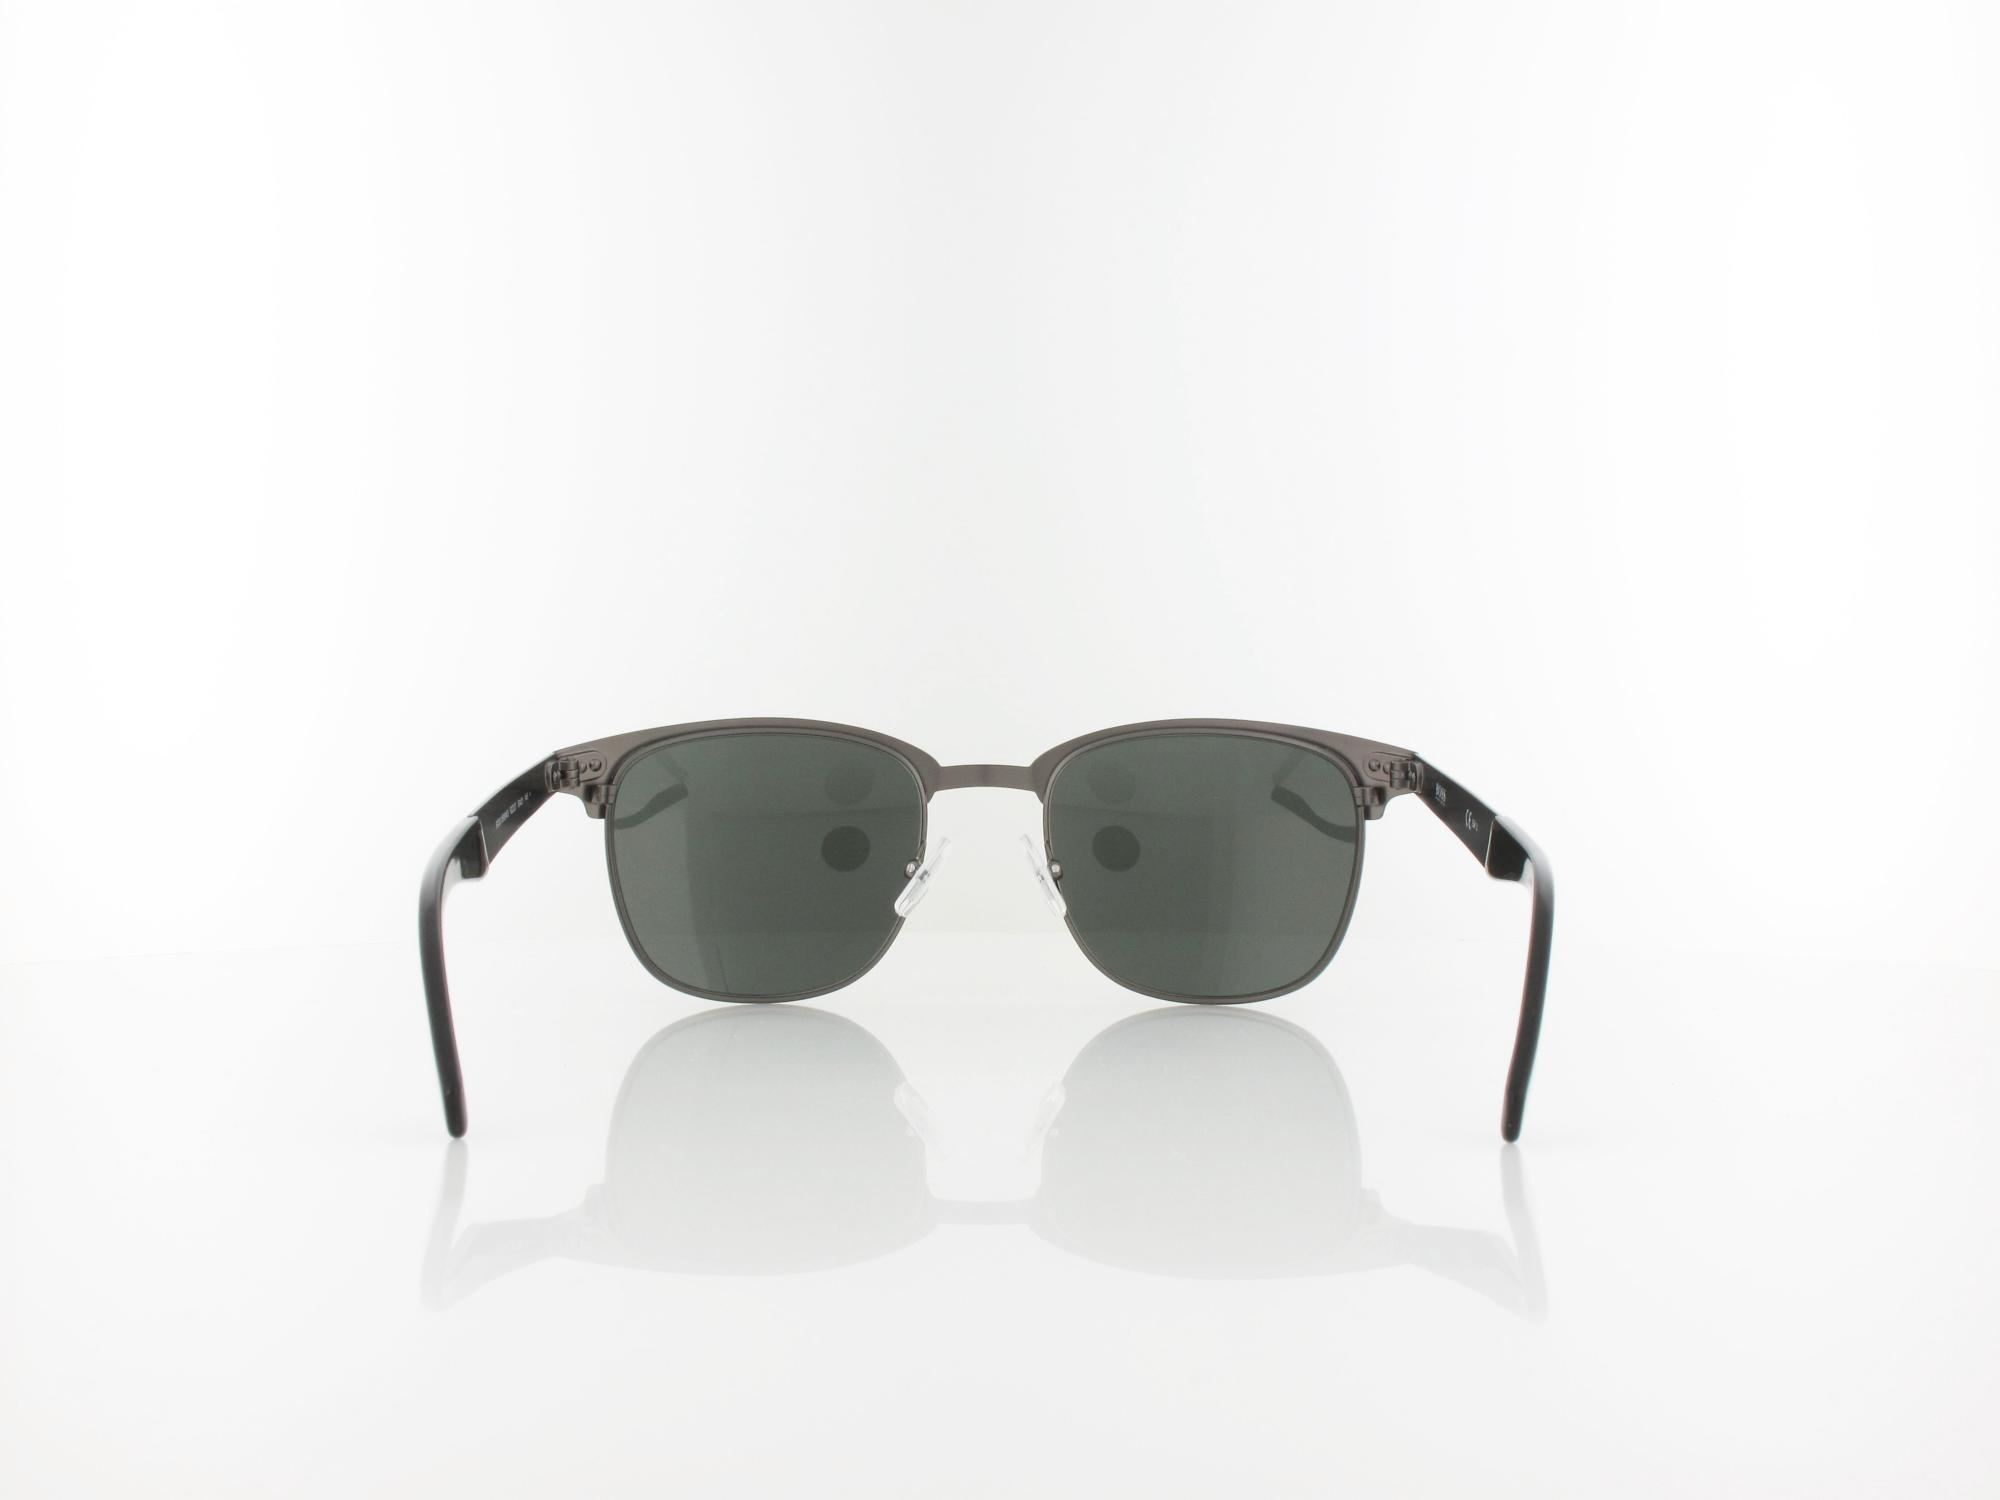 Hugo Boss | Boss 0595/N/S RZZ 53 | matt black dark ruthenium / grey